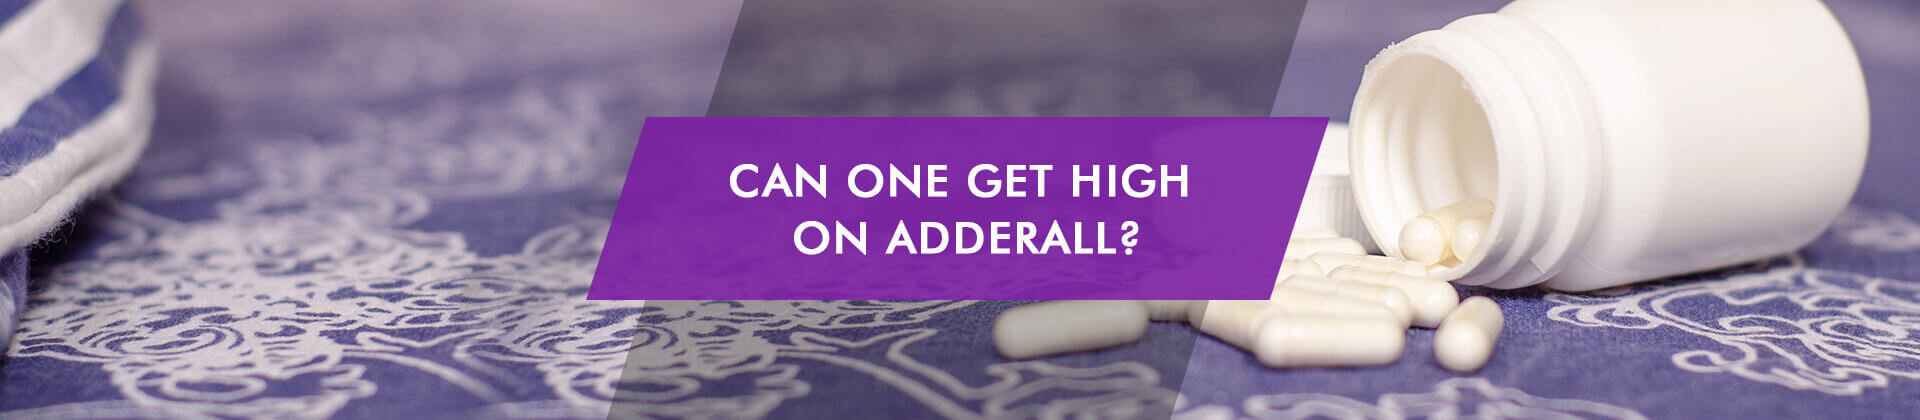 Can One Get High on Adderall pills on carpet